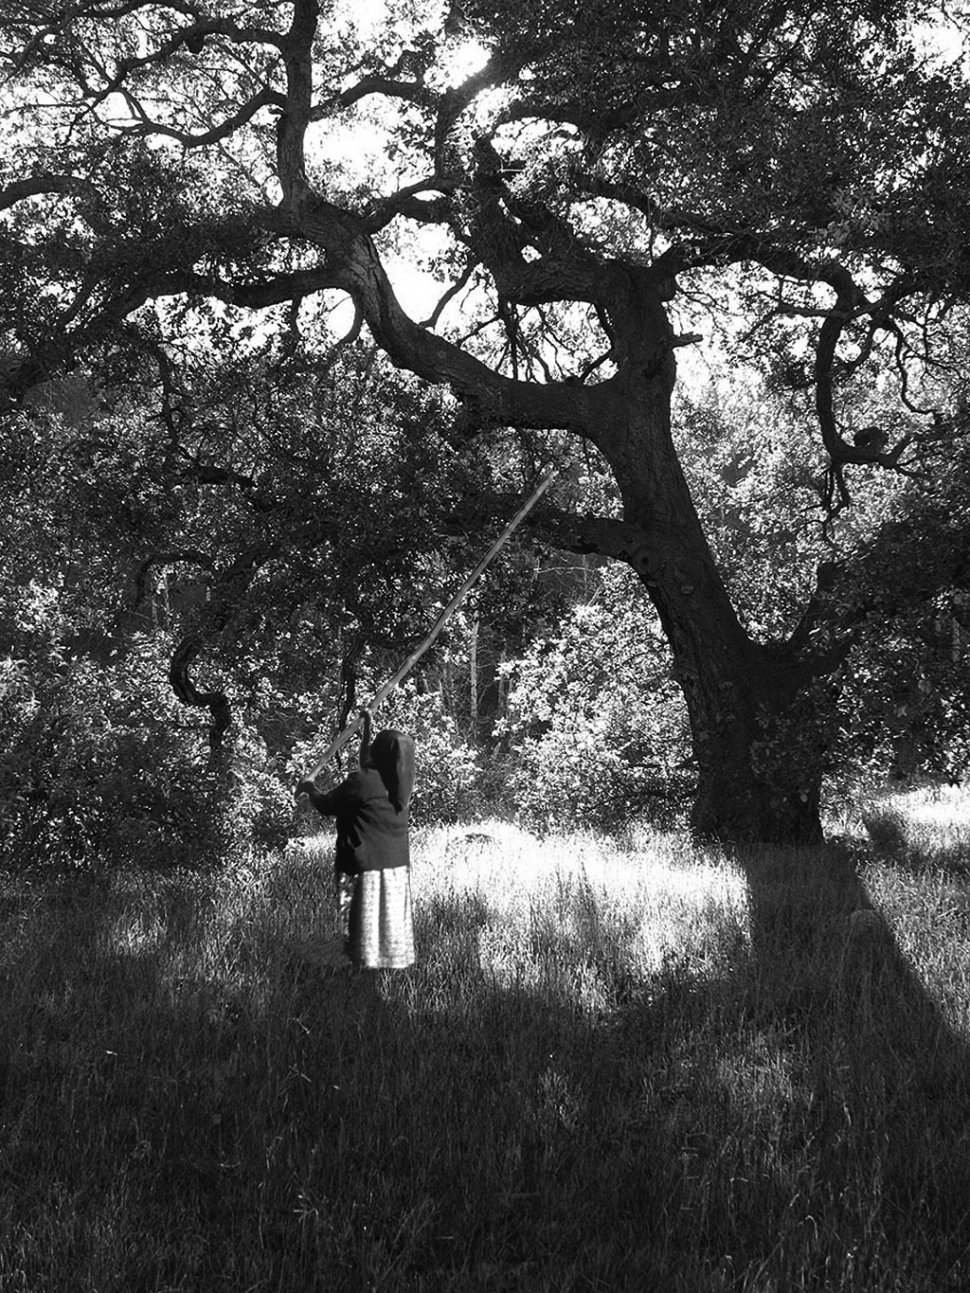 Groves of Valley Oaks were tended to by native families over generations, influencing entire ecosystems.